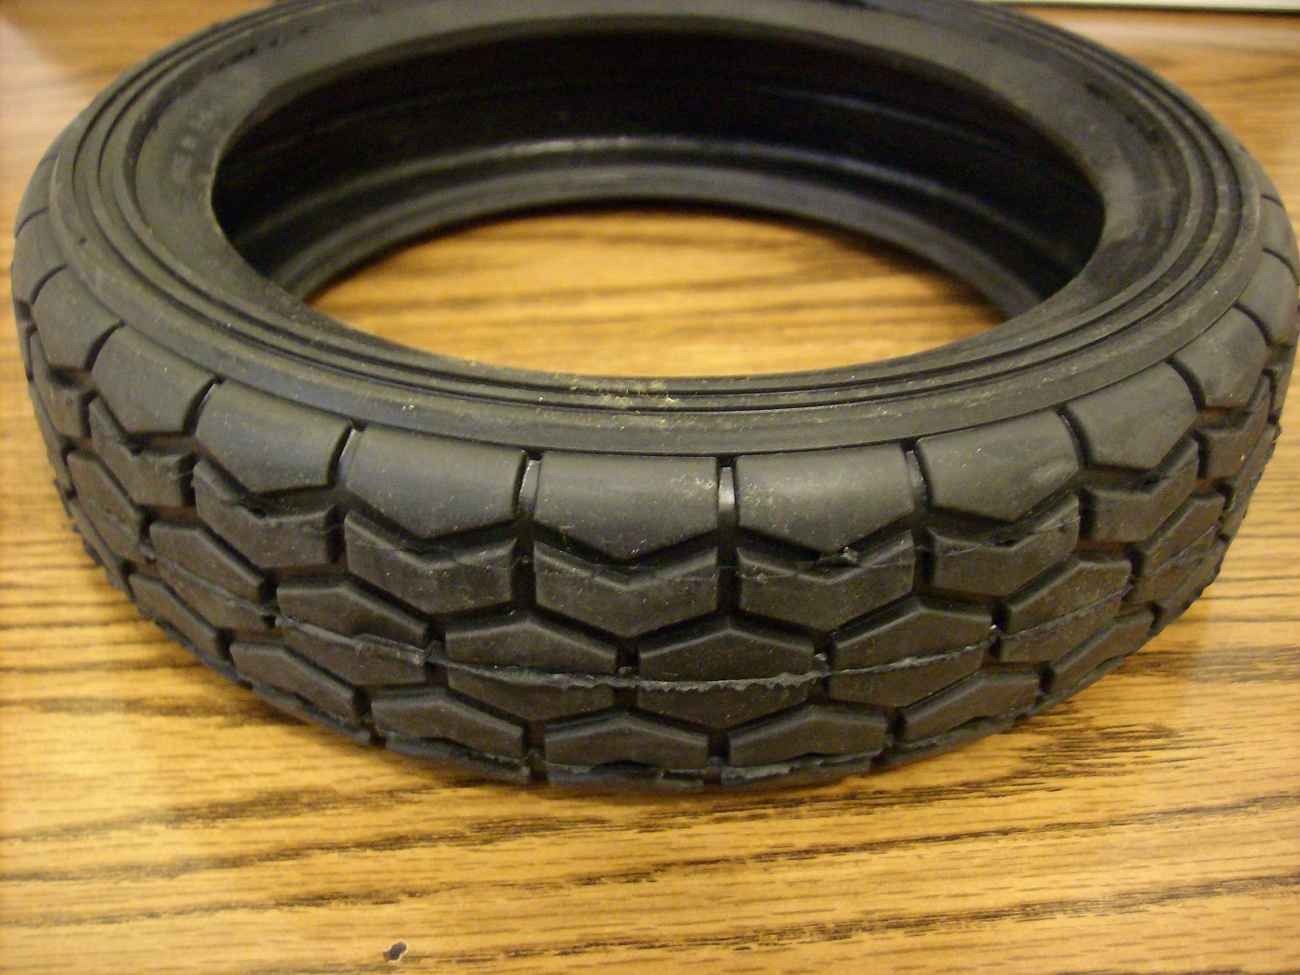 Honda lawn mower wheel tire HRC216 PXA, SXA and HXA 42861-VB5-800